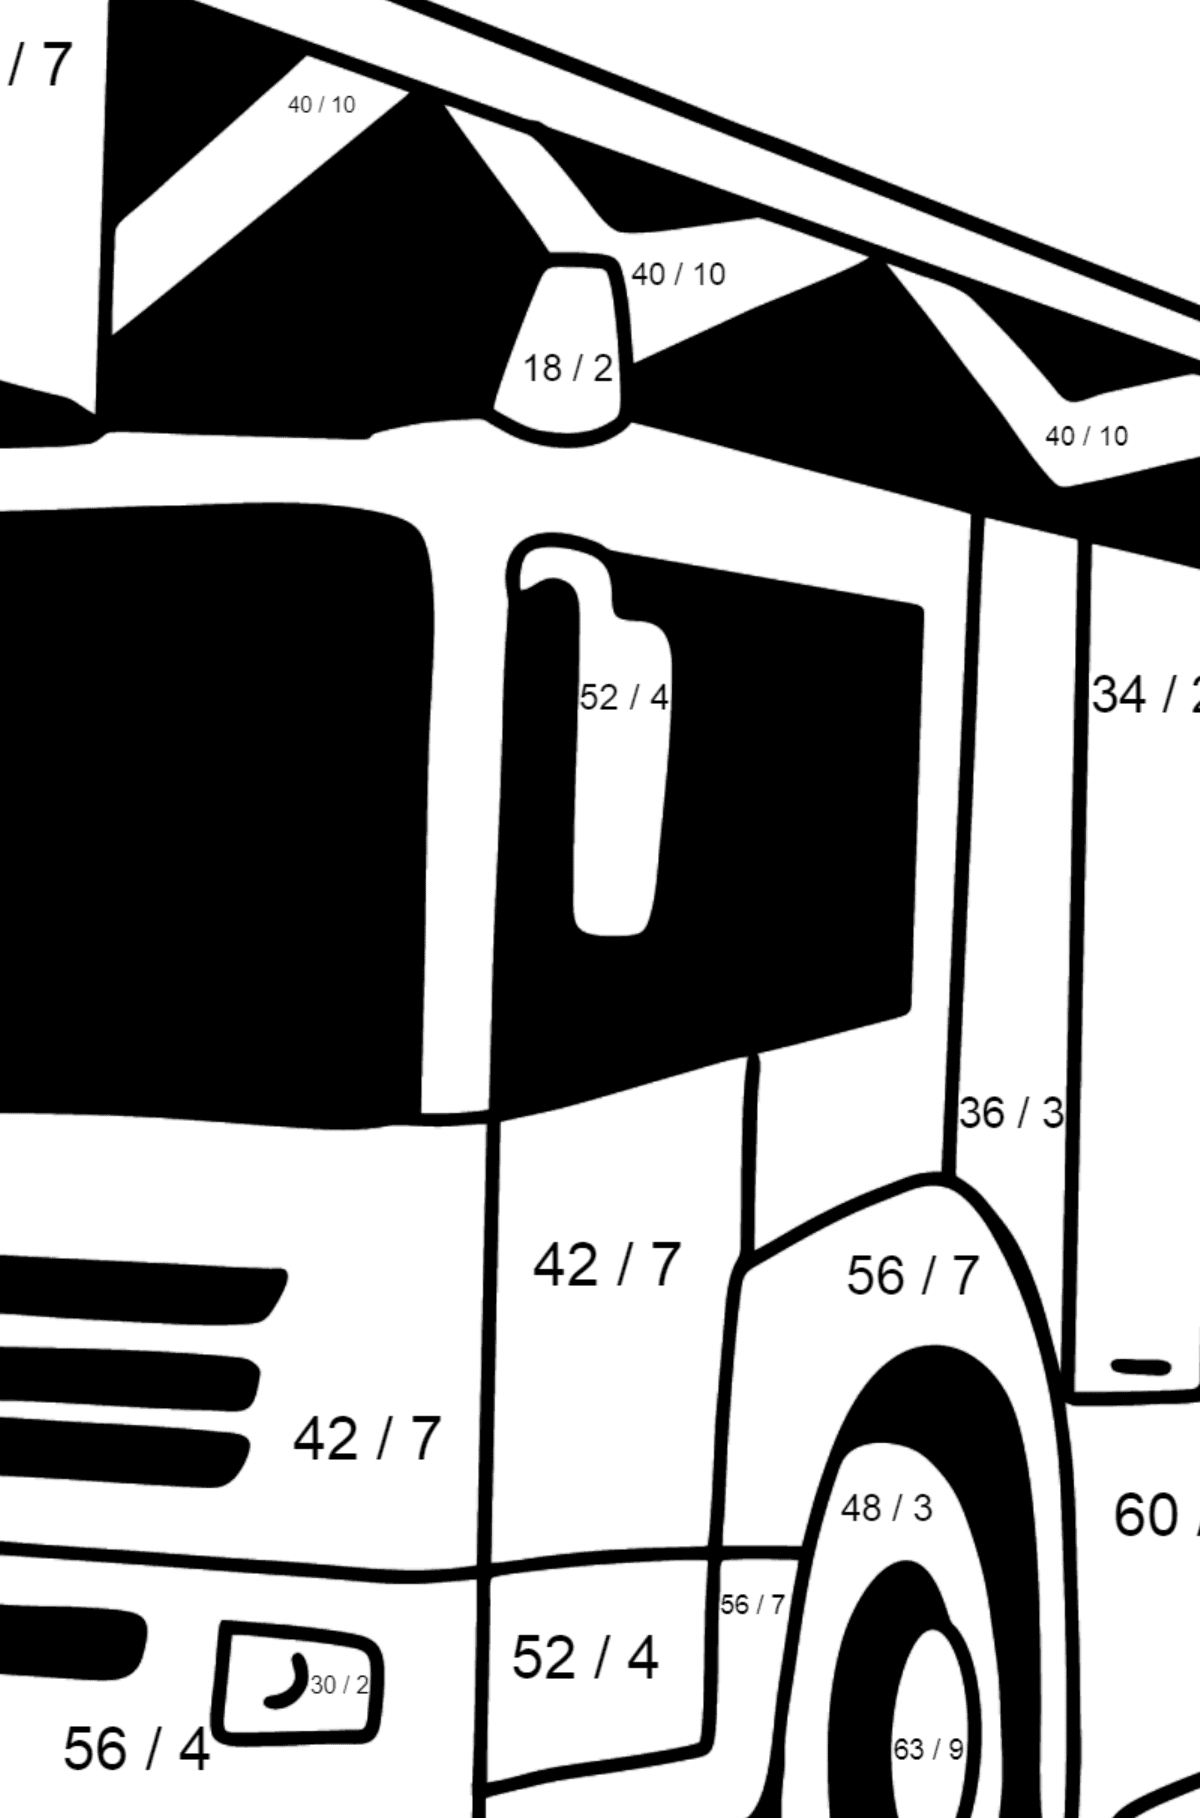 Fire Truck in Germany coloring page - Math Coloring - Division for Kids